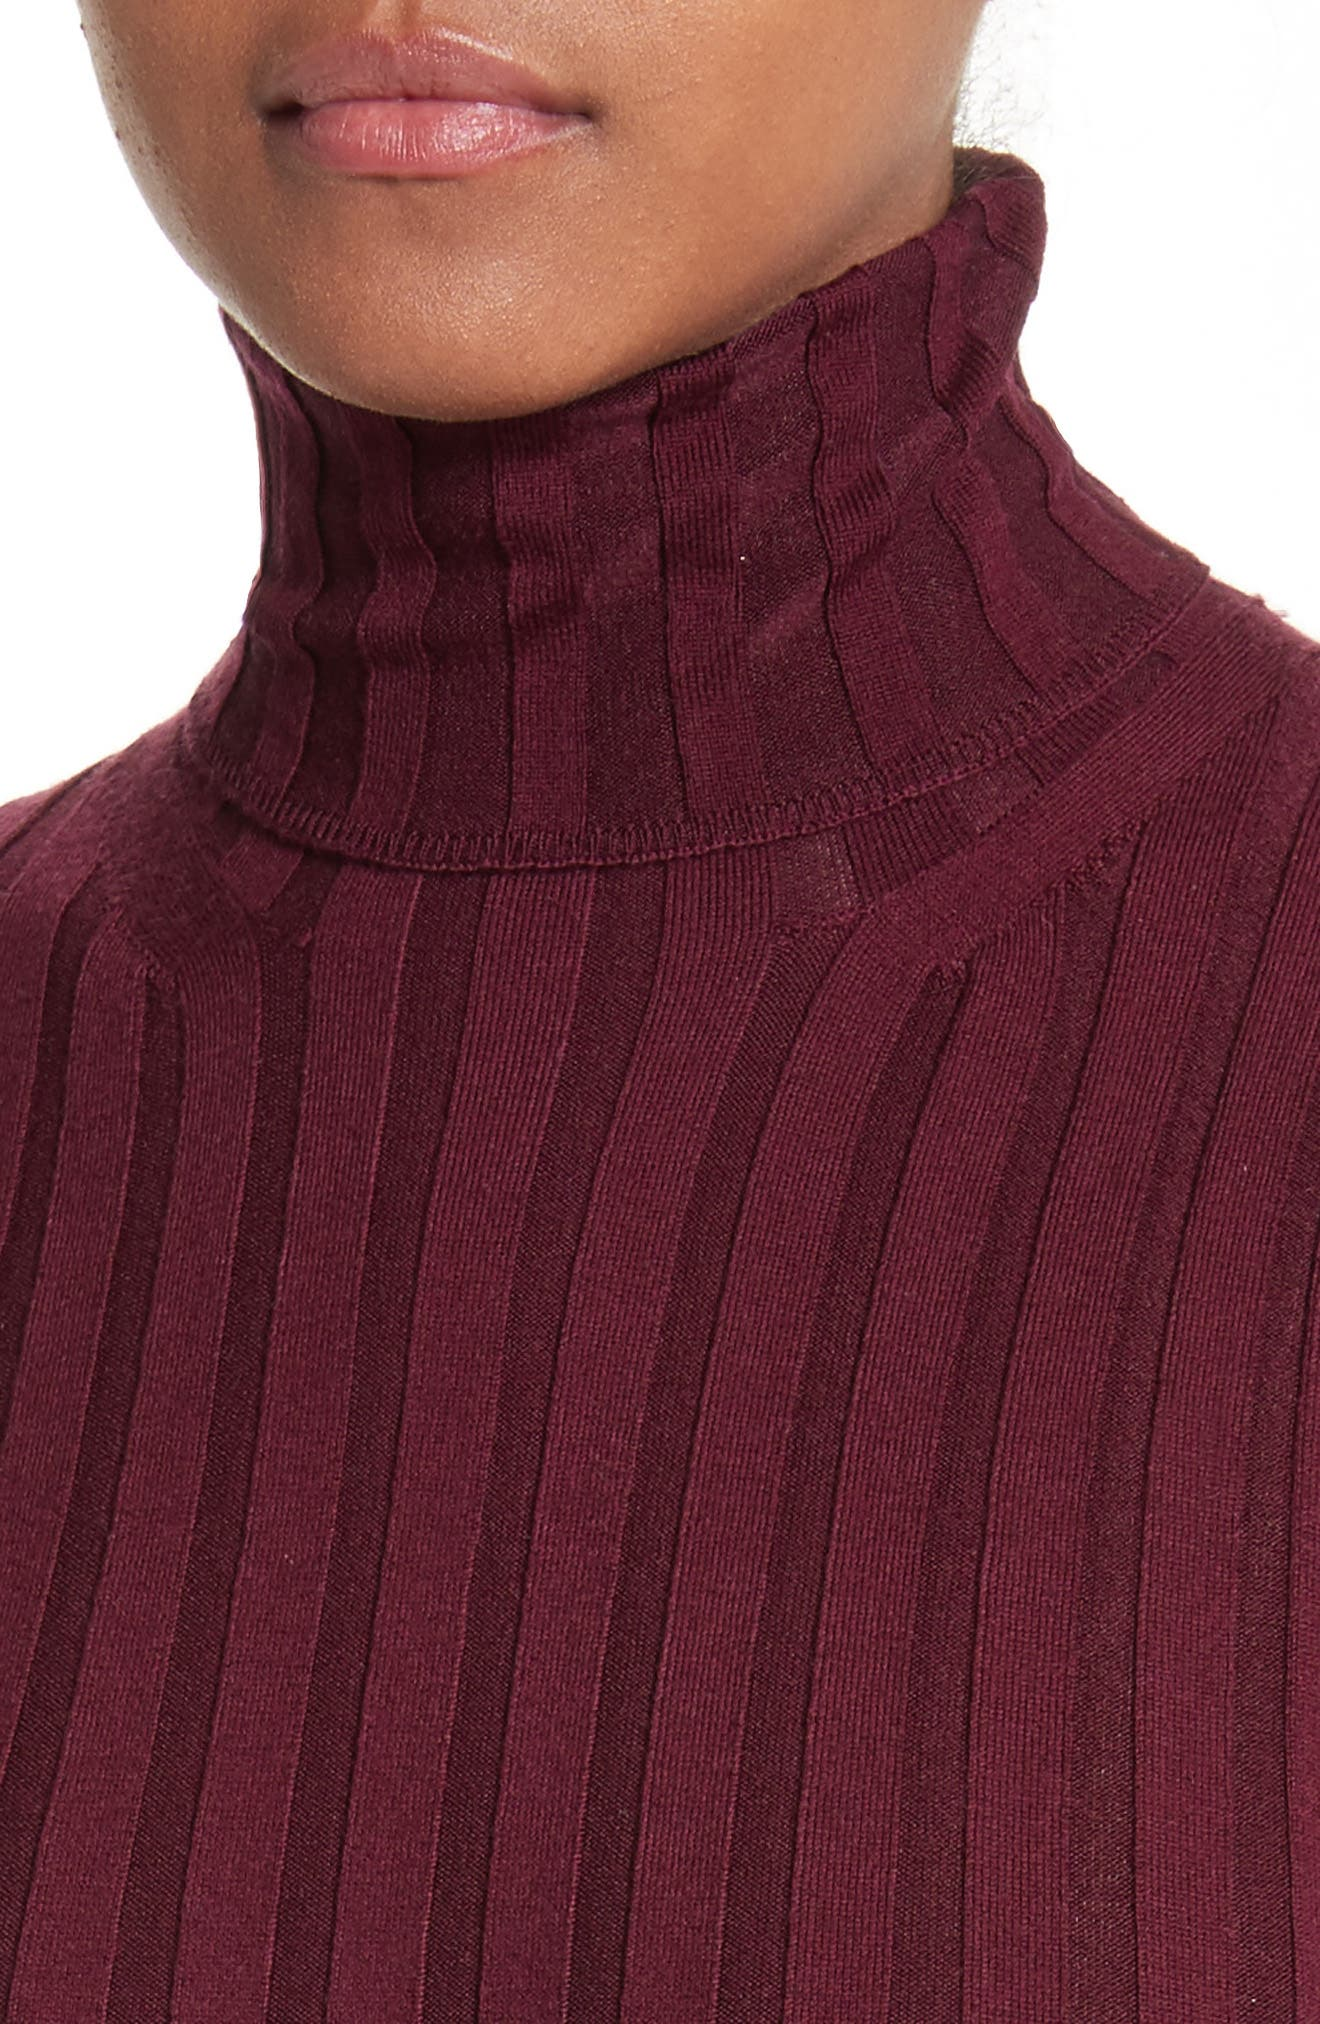 Corina Fitted Turtleneck Sweater,                             Alternate thumbnail 4, color,                             930